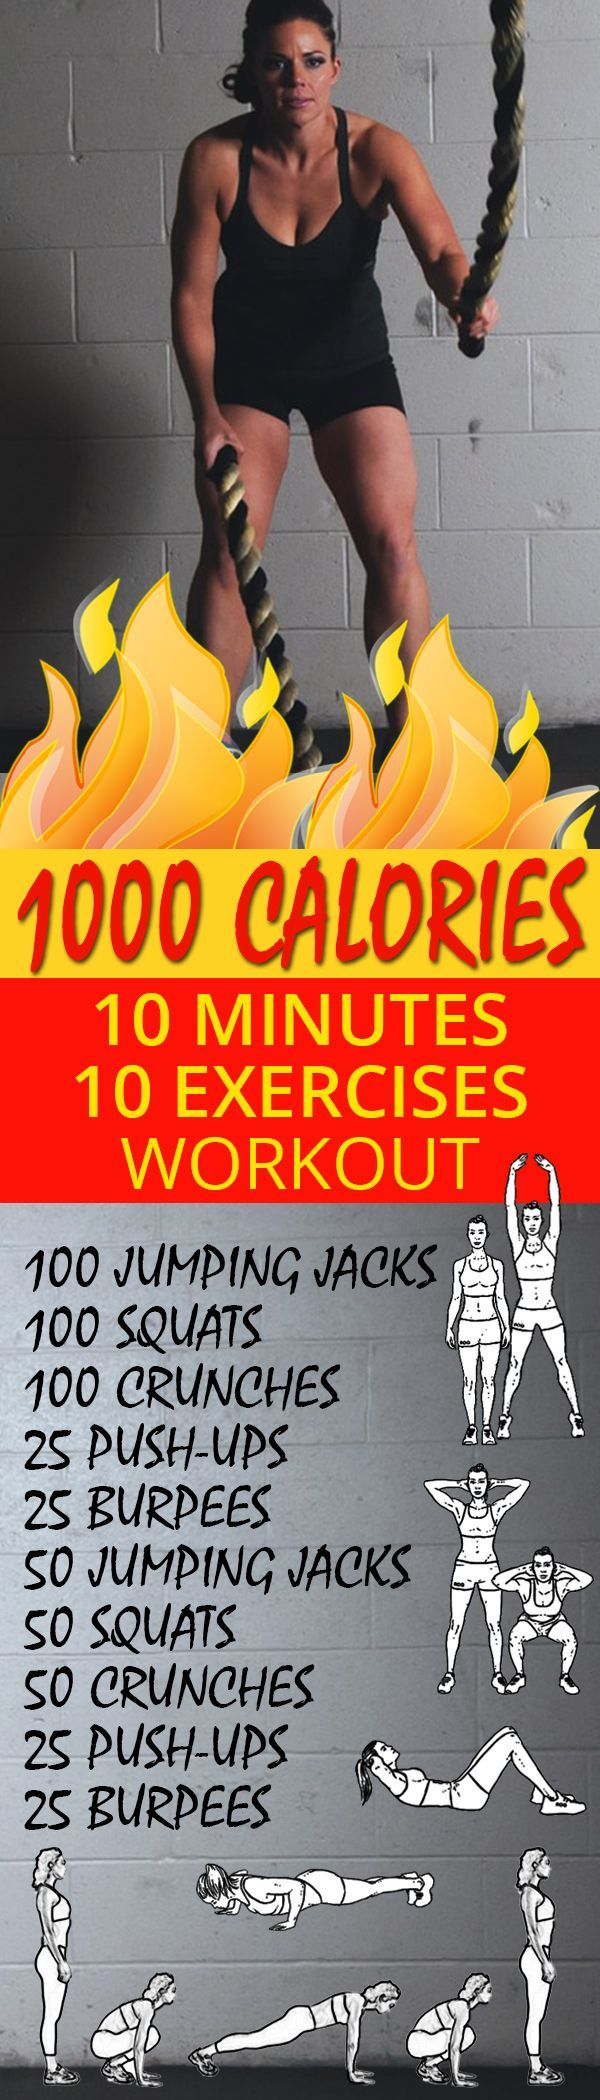 10 Minute Beginner Jump Rope Workout Body Under Construction Jump Rope Workout Beginner Jump Rope Workout